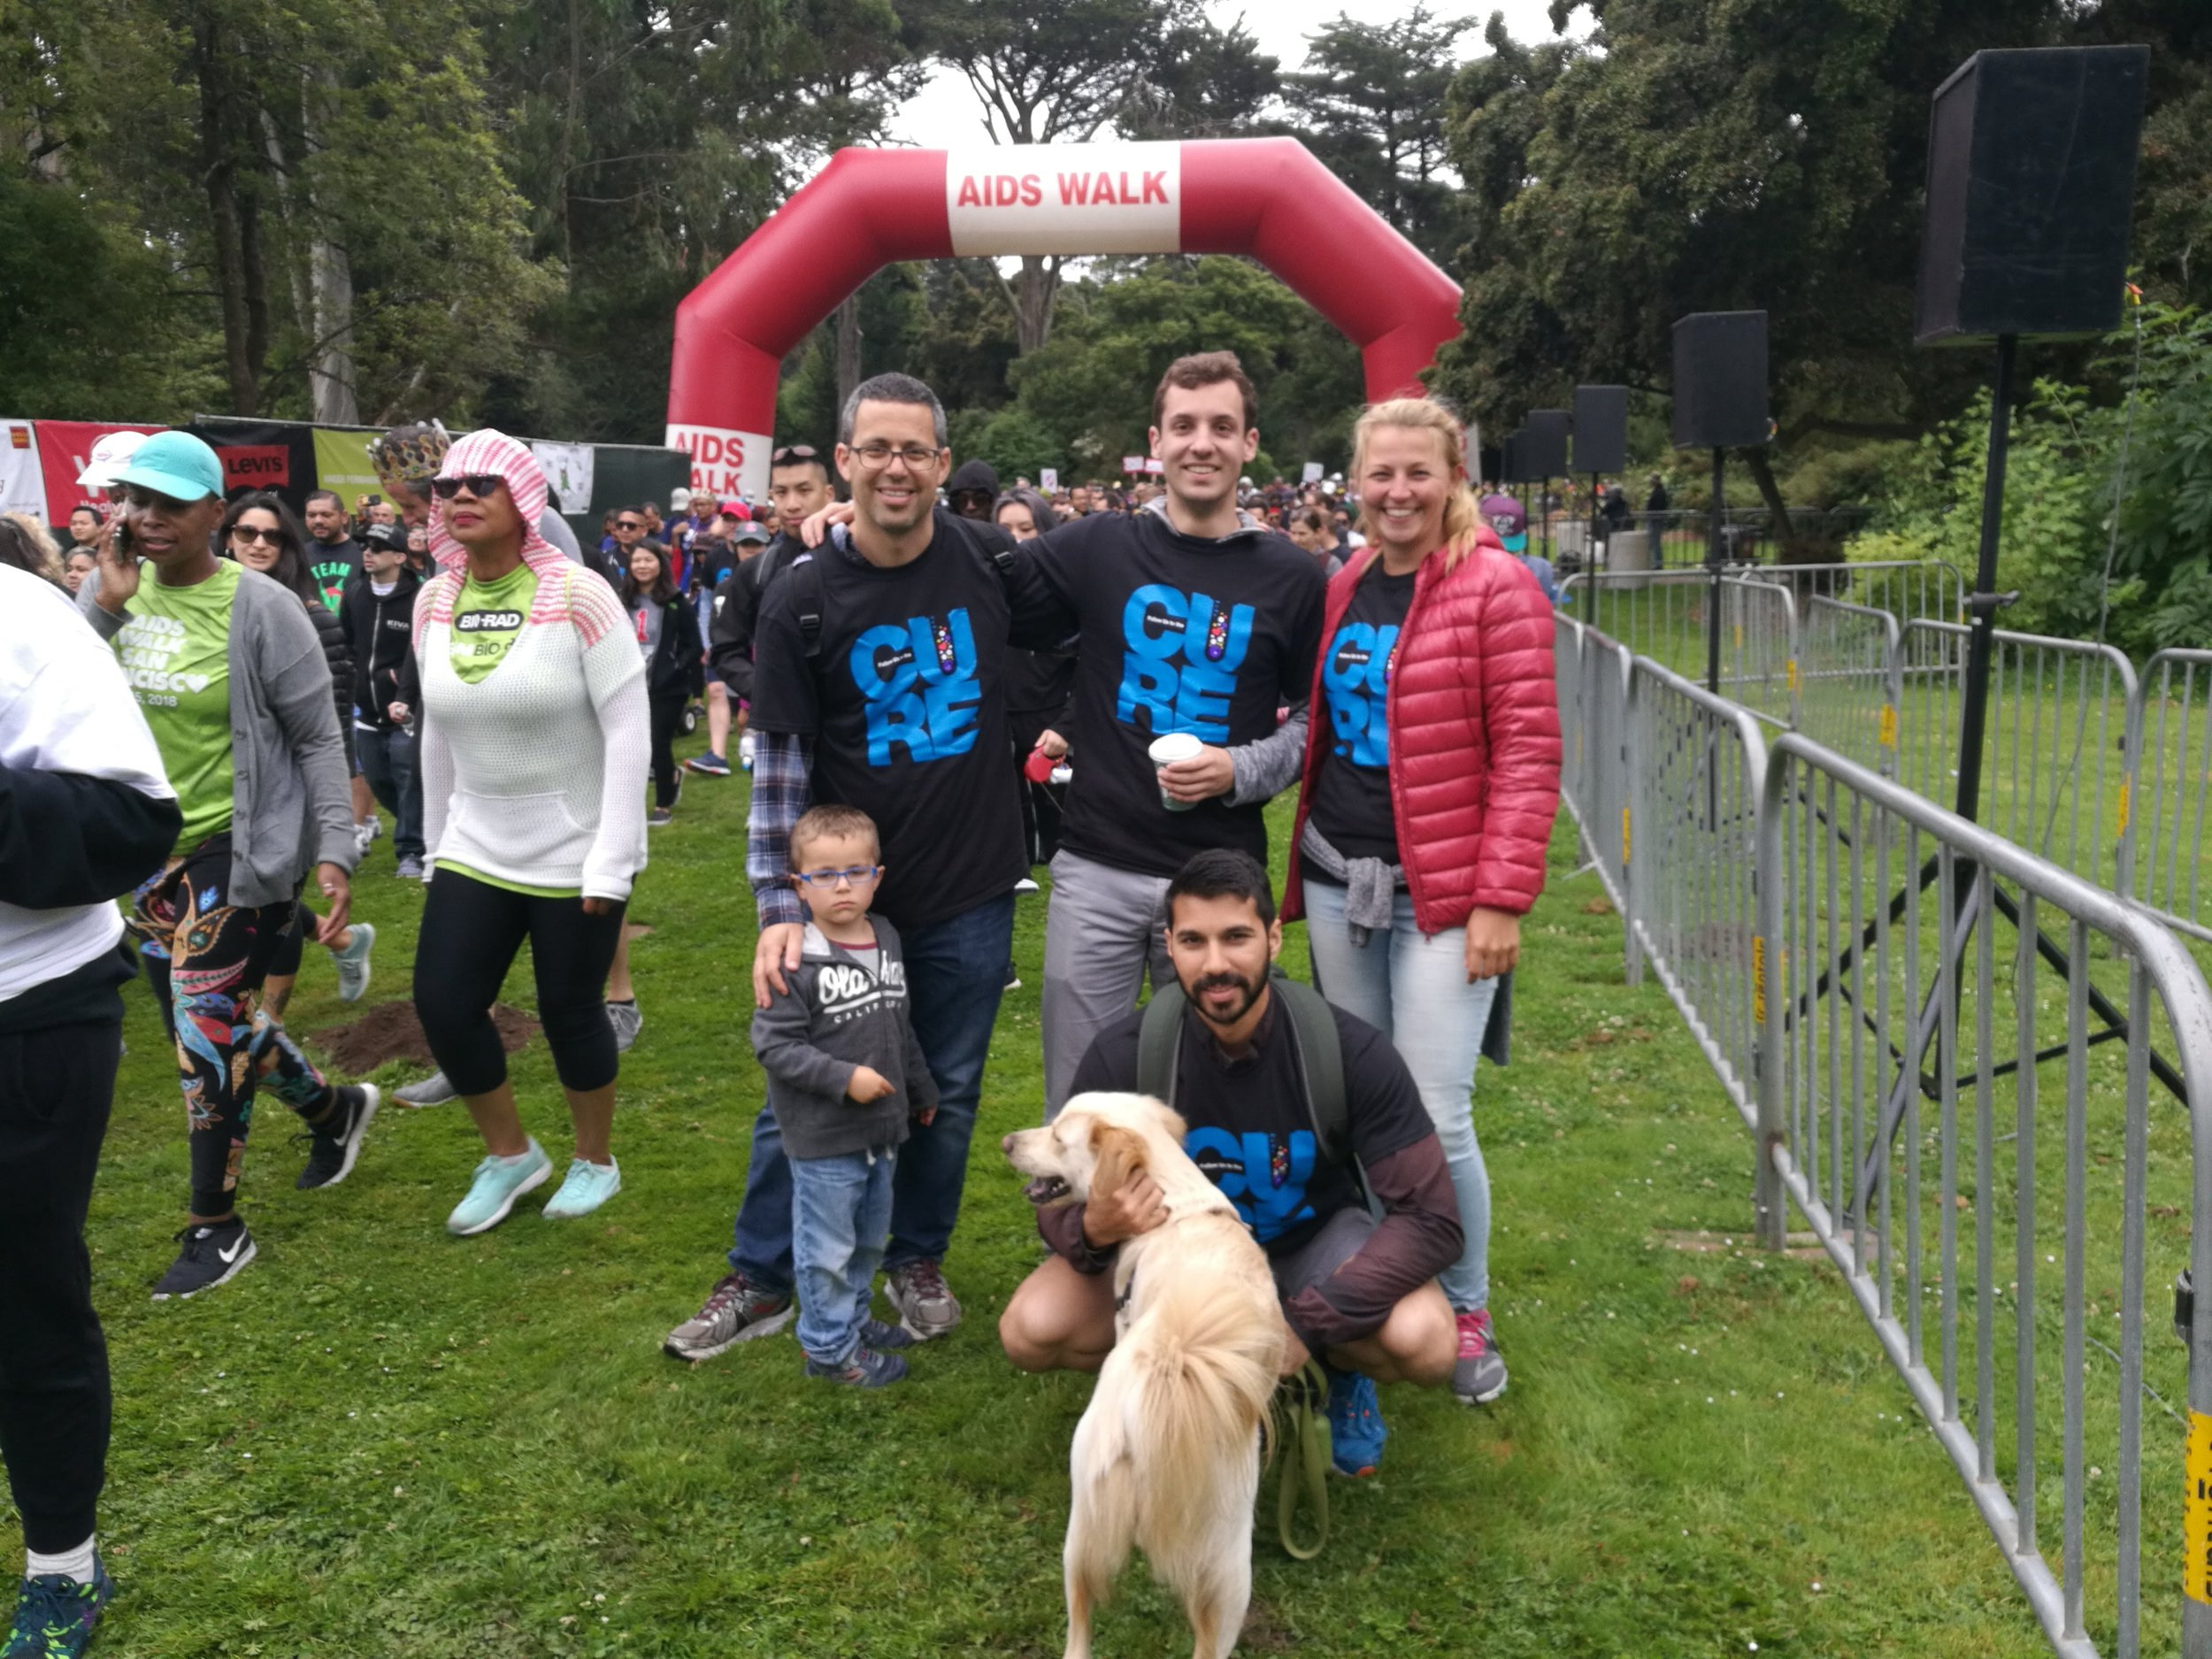 Dogs, children....and lab members at Gladstone's AIDS walk